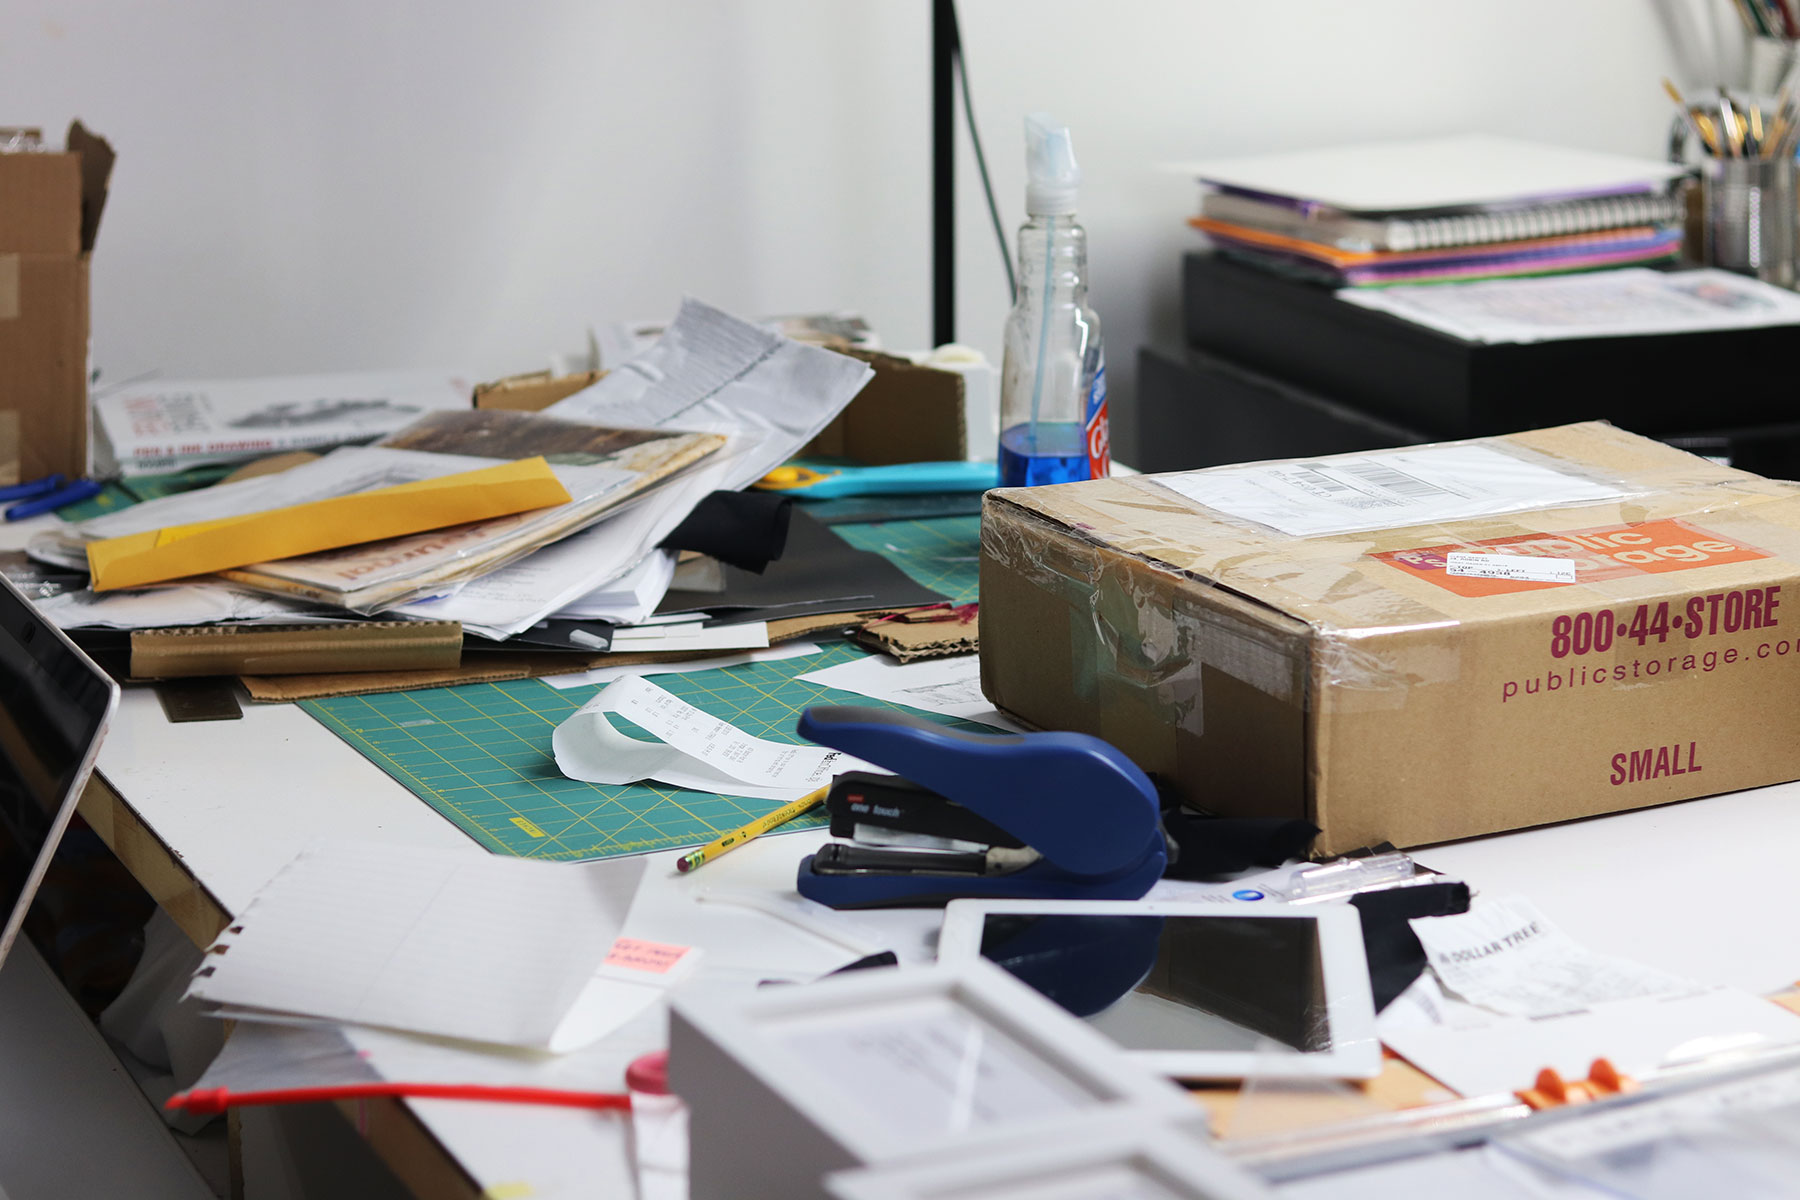 Organize your creative space to unleash your inner creativity